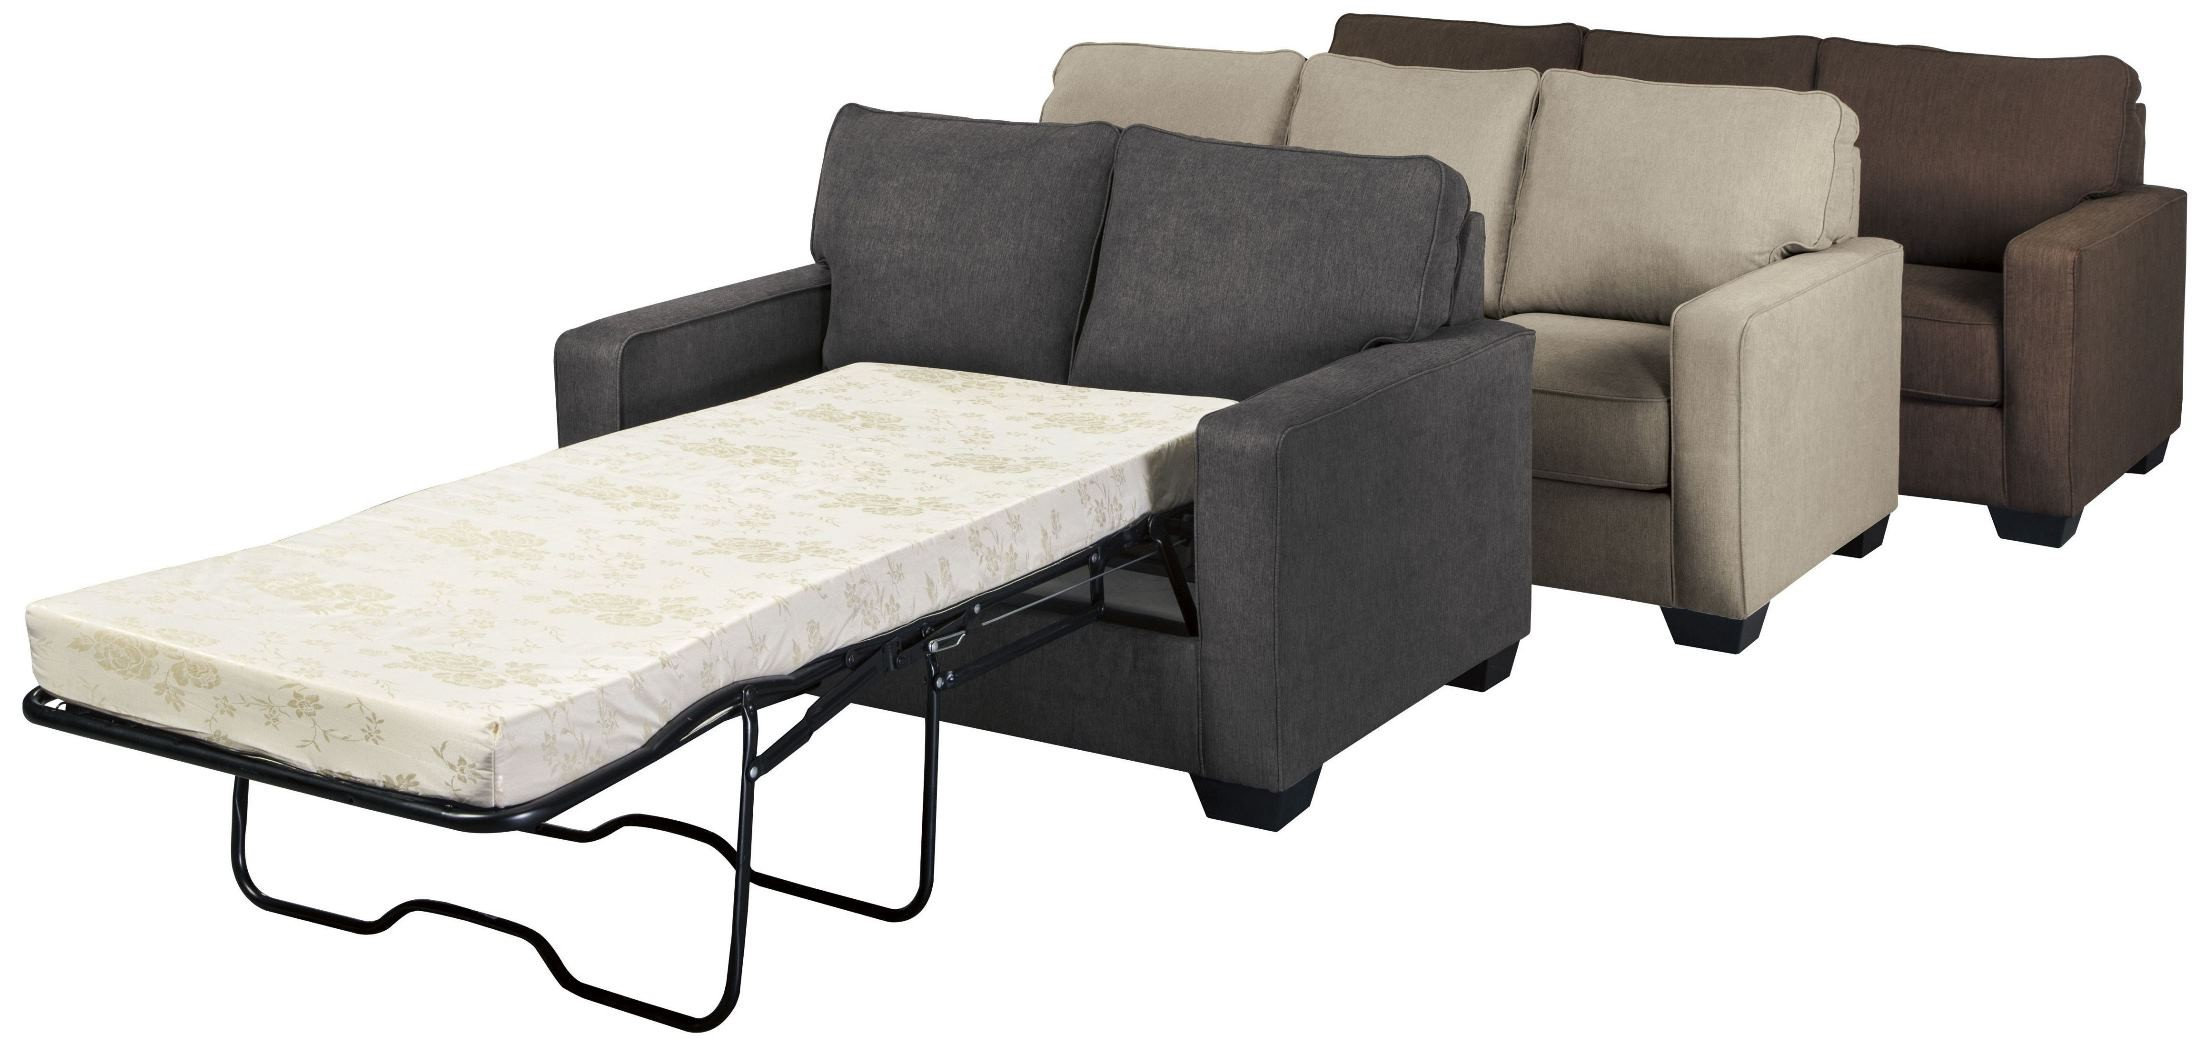 Zeb Espresso Twin Sofa Sleeper 3590337 Ashley